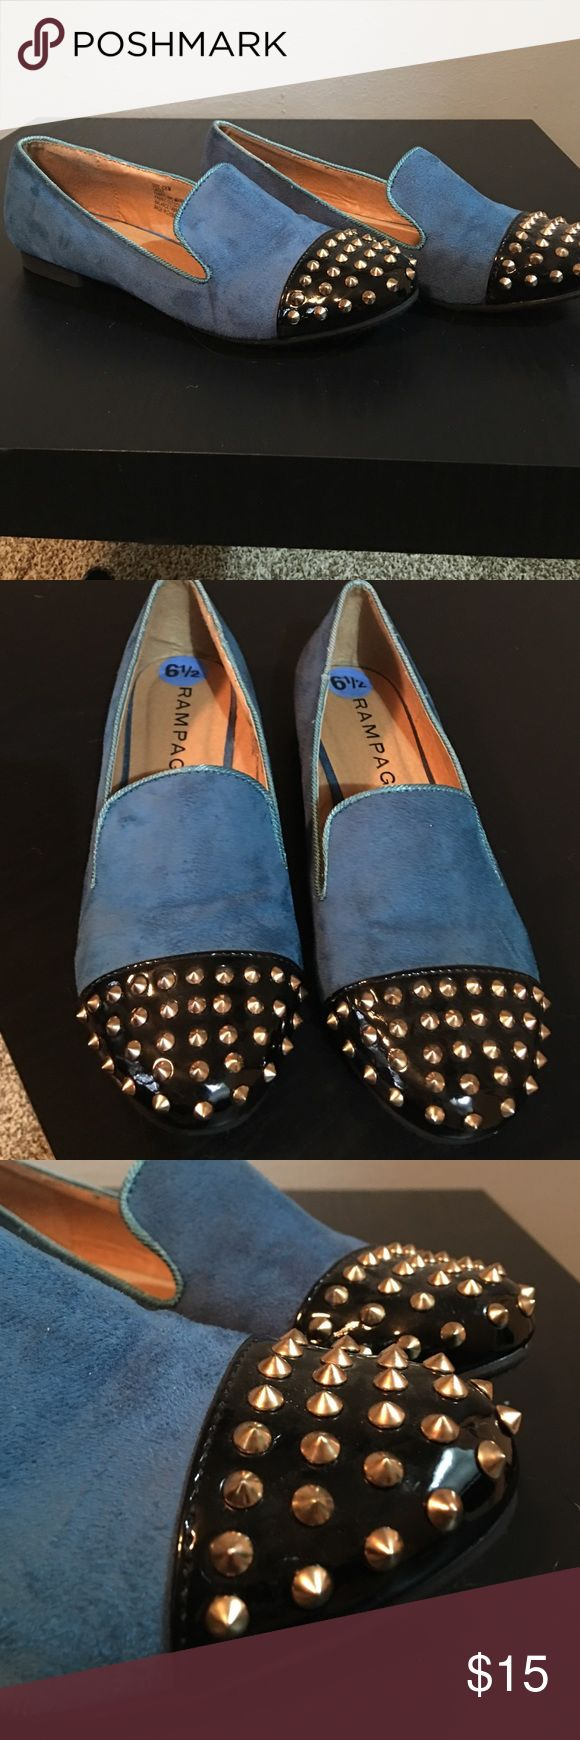 New Rampage studded loafers Never worn Rampage teal with black cap toe with gold studs. Super cute, a unique little shoe. Rampage Shoes Flats & Loafers